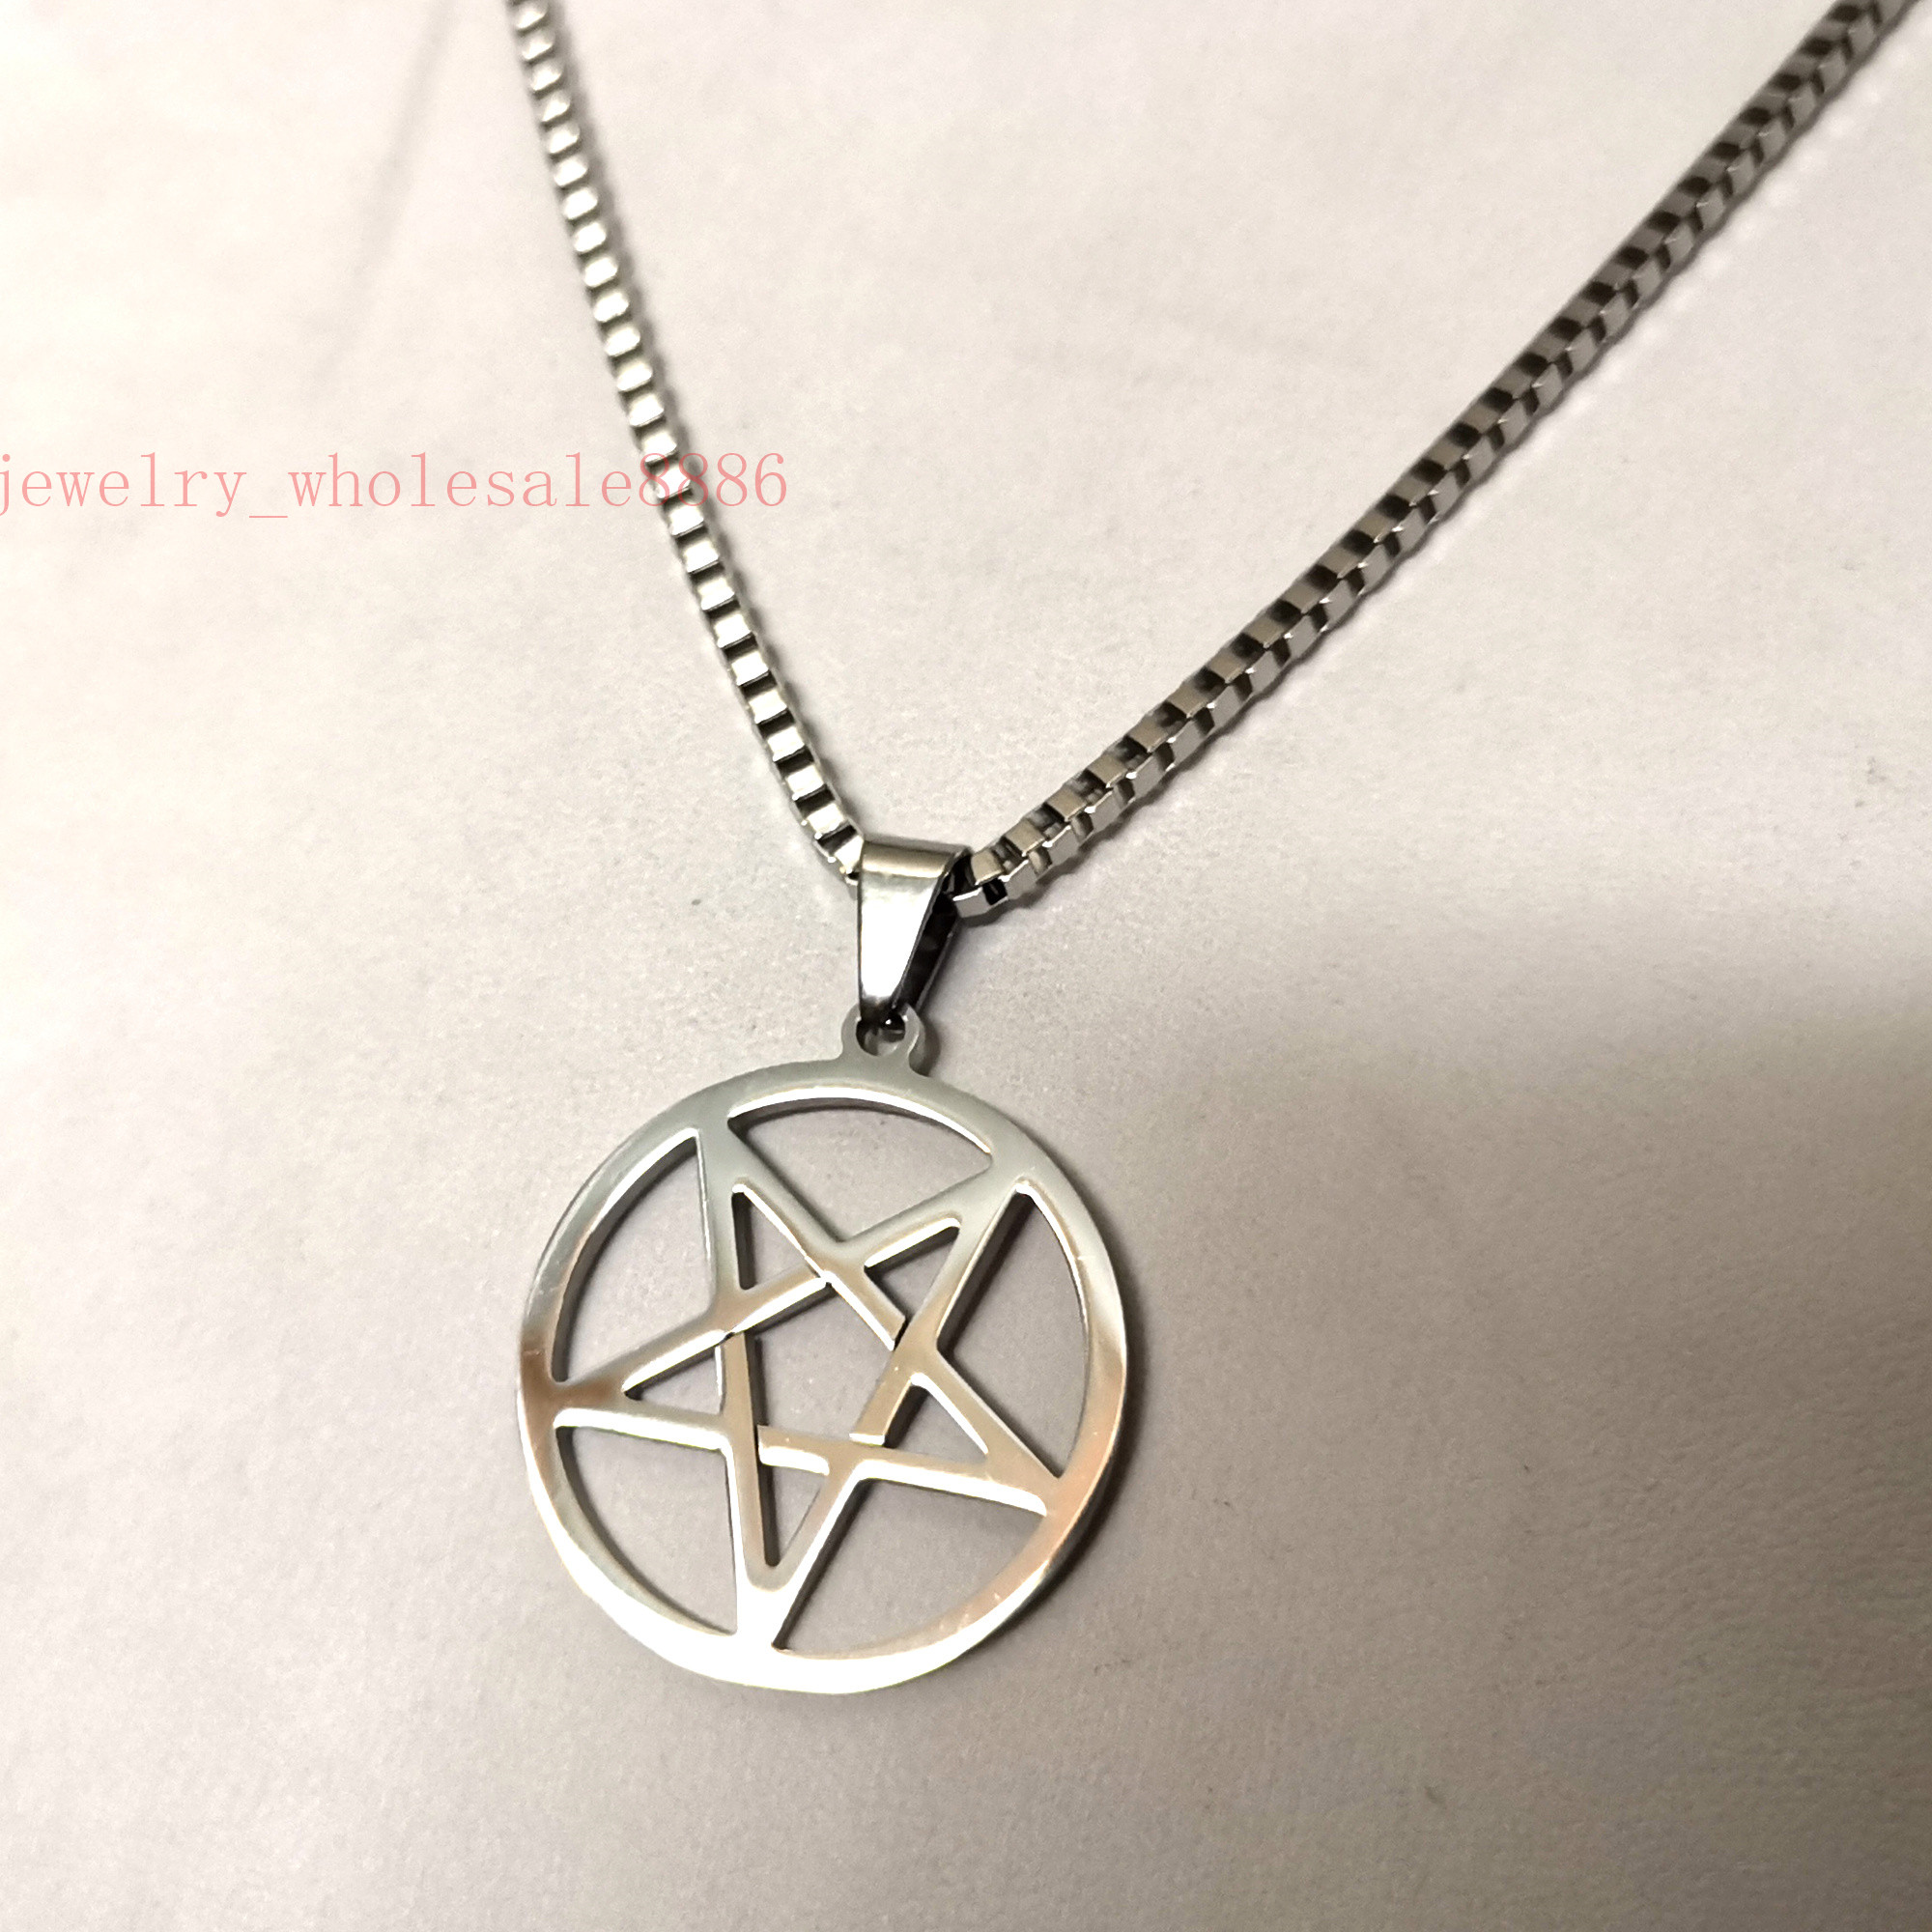 10pcs Star pentacle pentagram charms Pendants Antique Silver 24*24mm